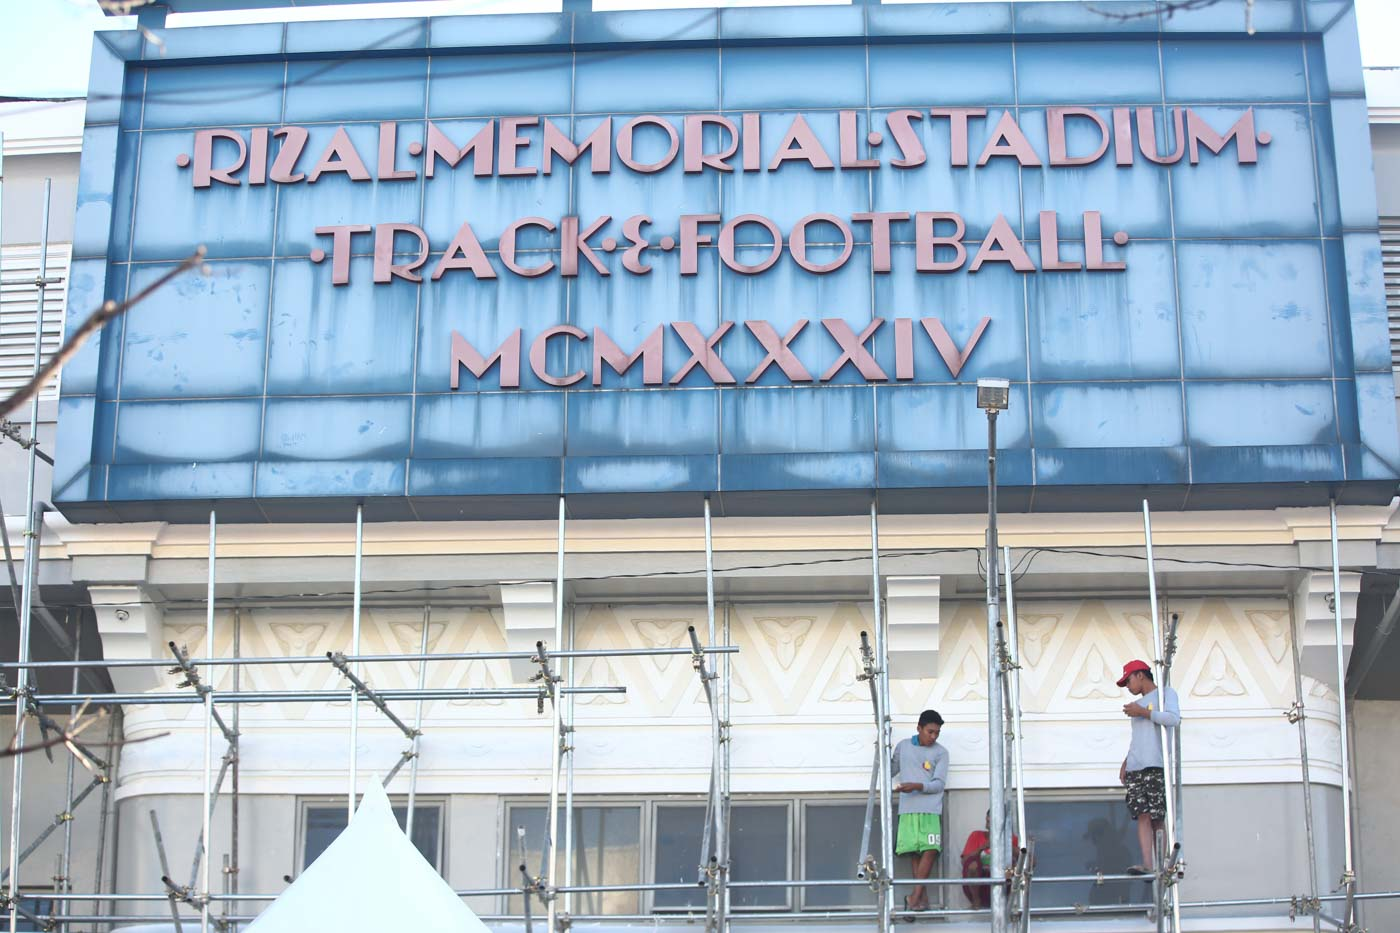 UNFINISHED. Metal scaffoldings remain around the Rizal Memorial Stadium. Photo by Ben Nabong/Rappler